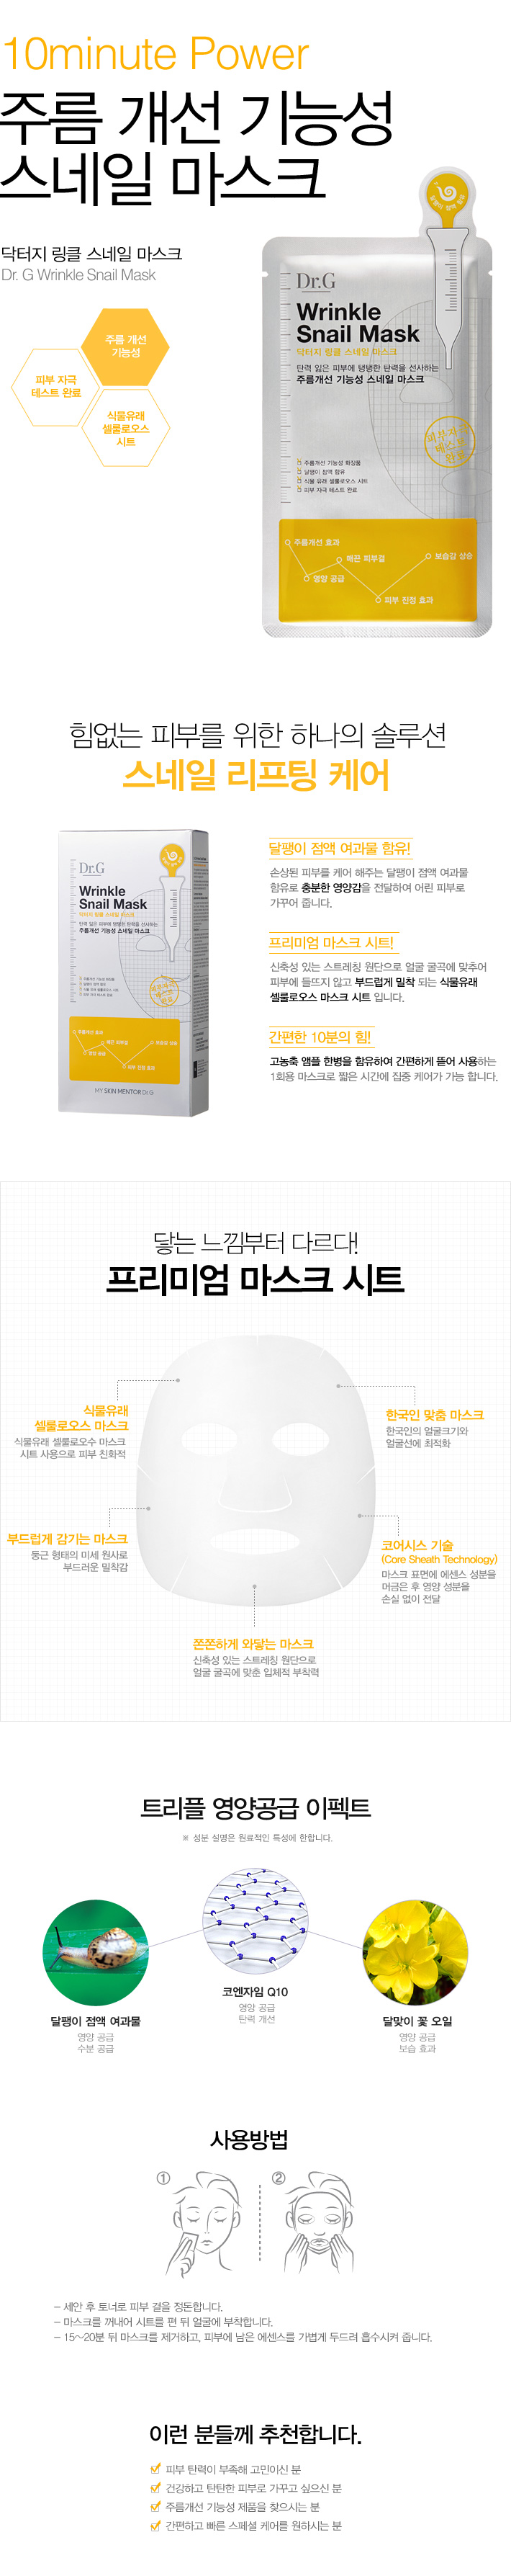 Wrinkle Snail Mask [Dr.G] - Korean Cosmetics & Beauty|Women's e  commerce|KoKoPASAR